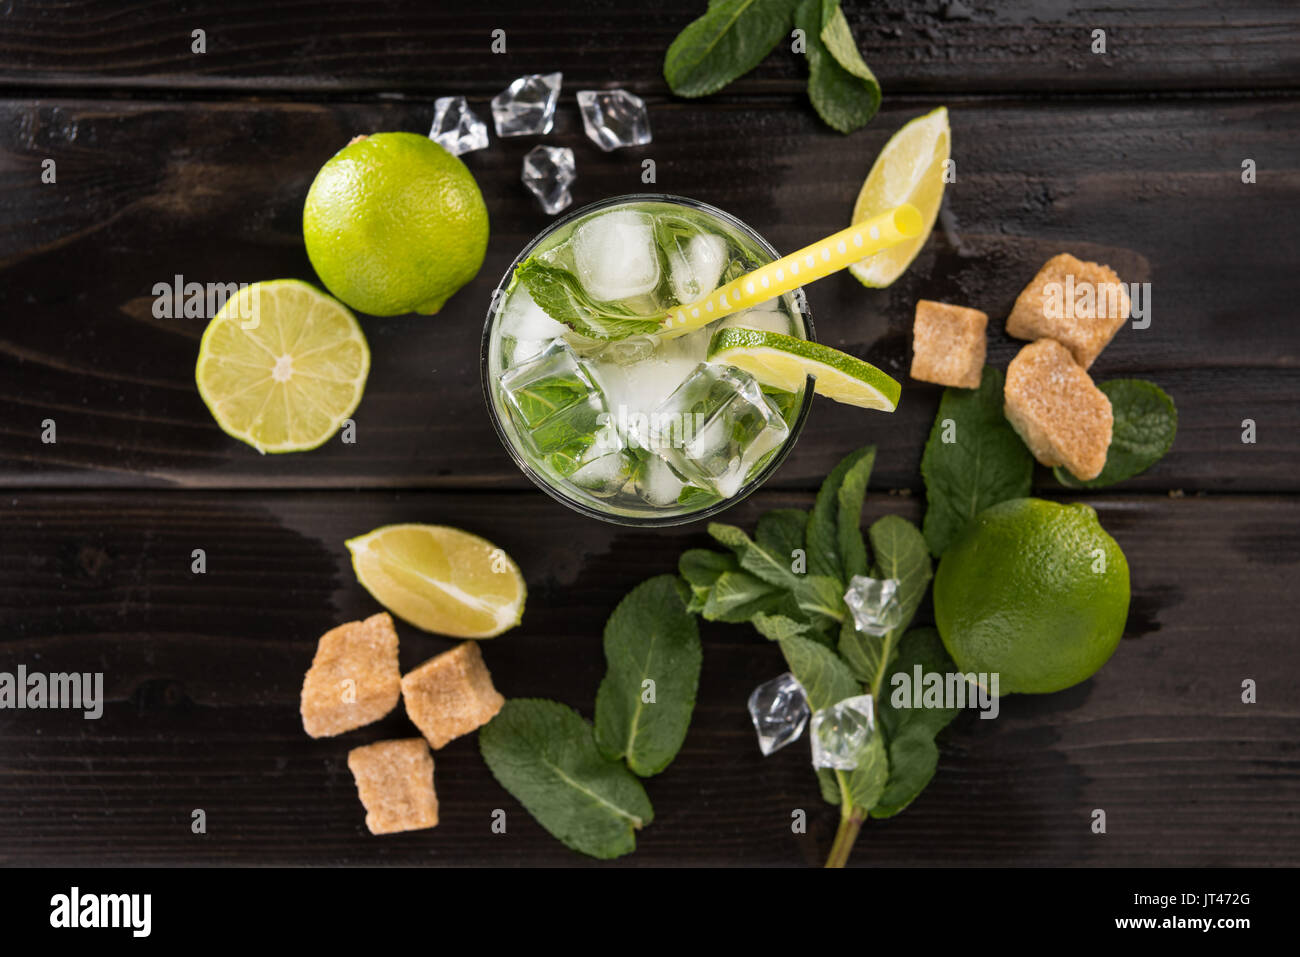 Top view of mojito cocktail in glass and fresh ingredients on dark wooden table top, cocktail drinks concept Stock Photo